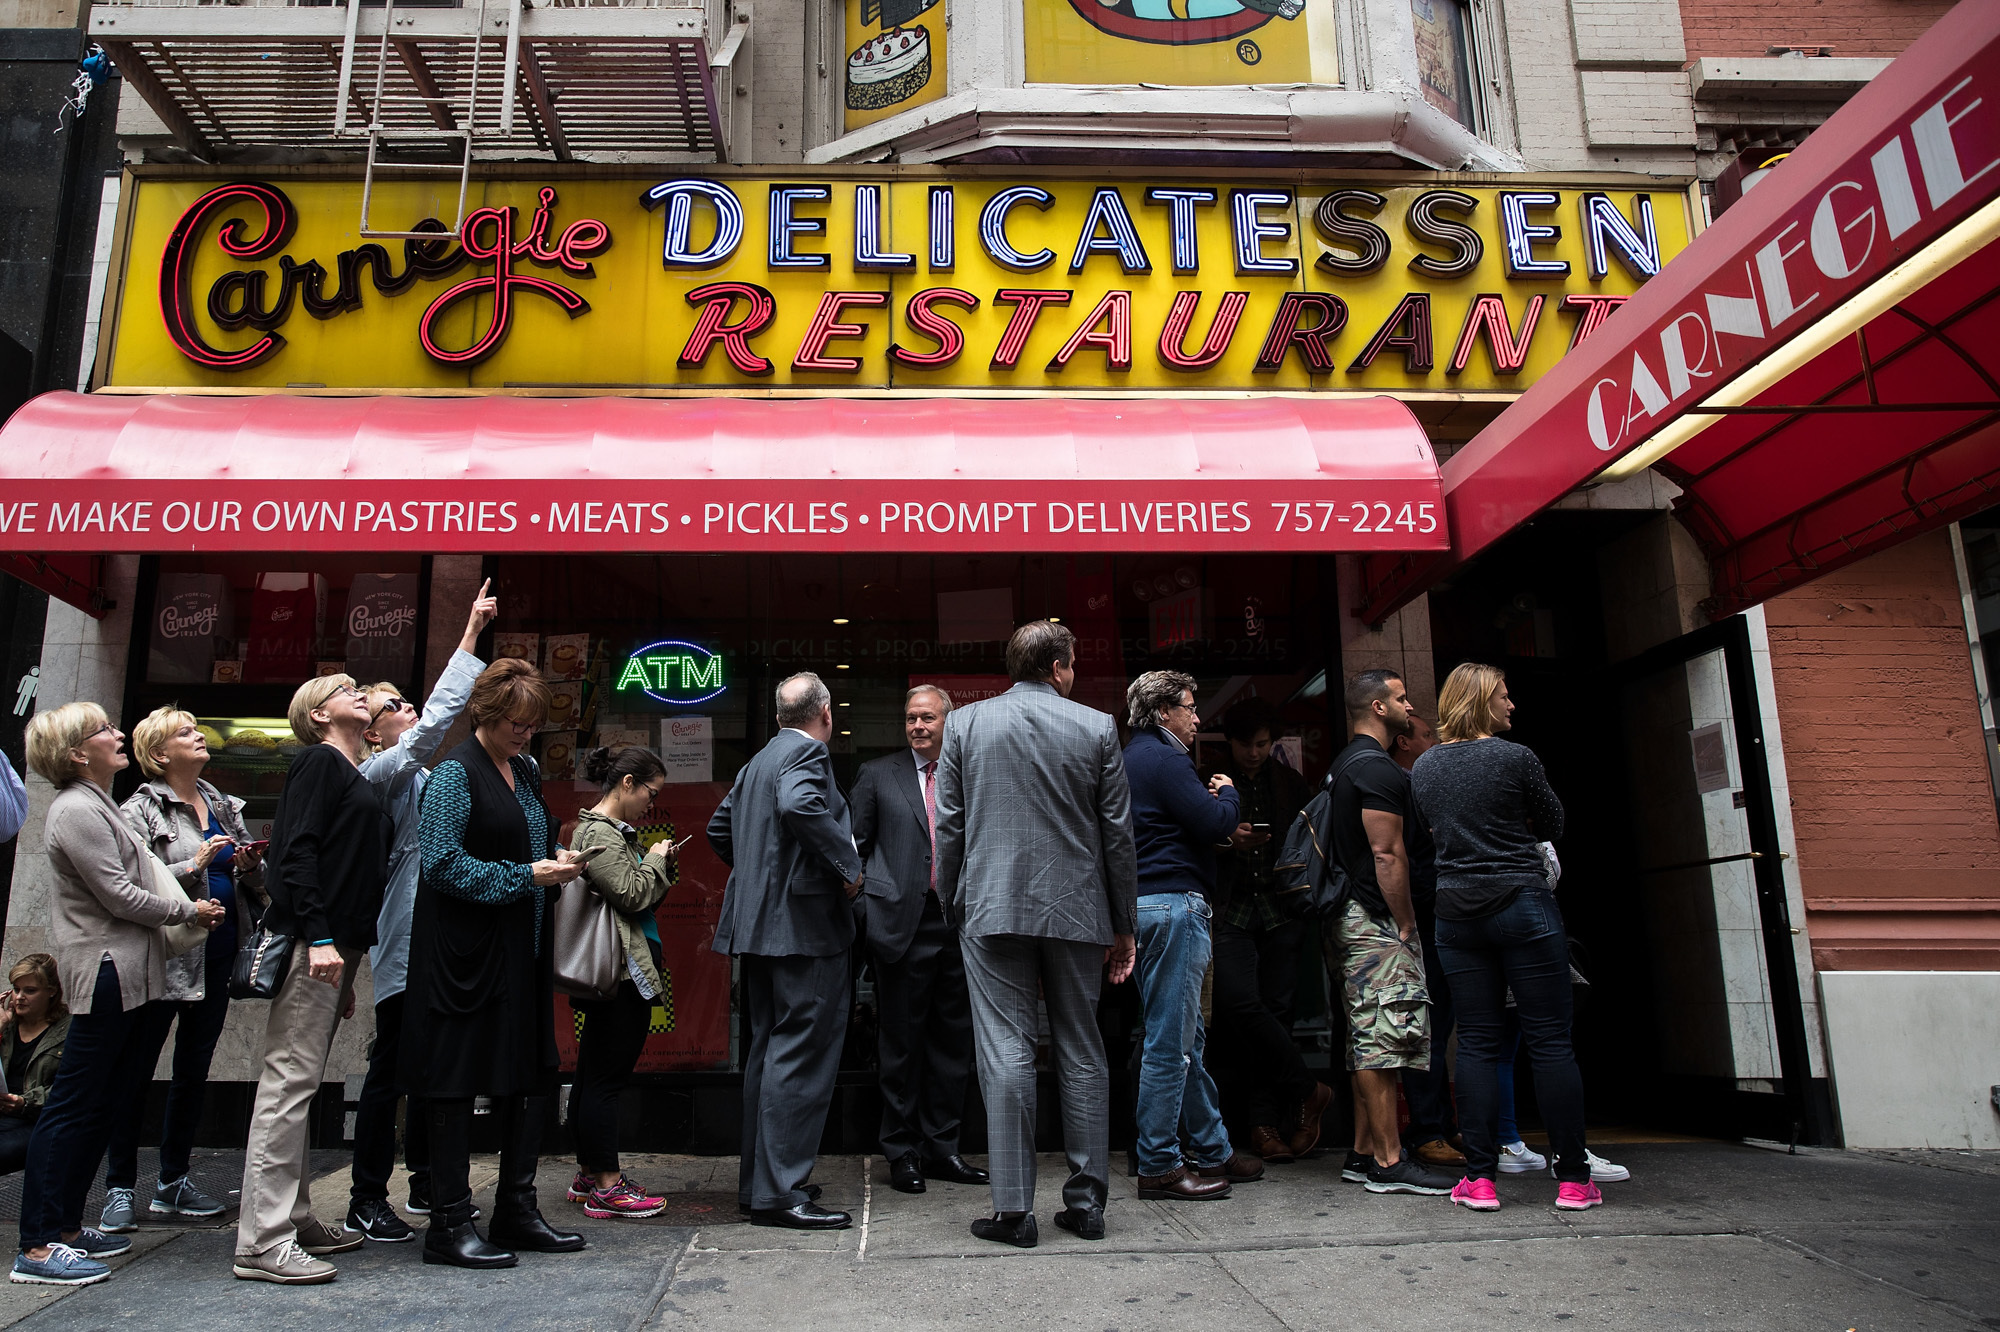 Customers wait in line outside for a table at the Carnegie Deli. (Photo: Drew Angerer/Getty Images)